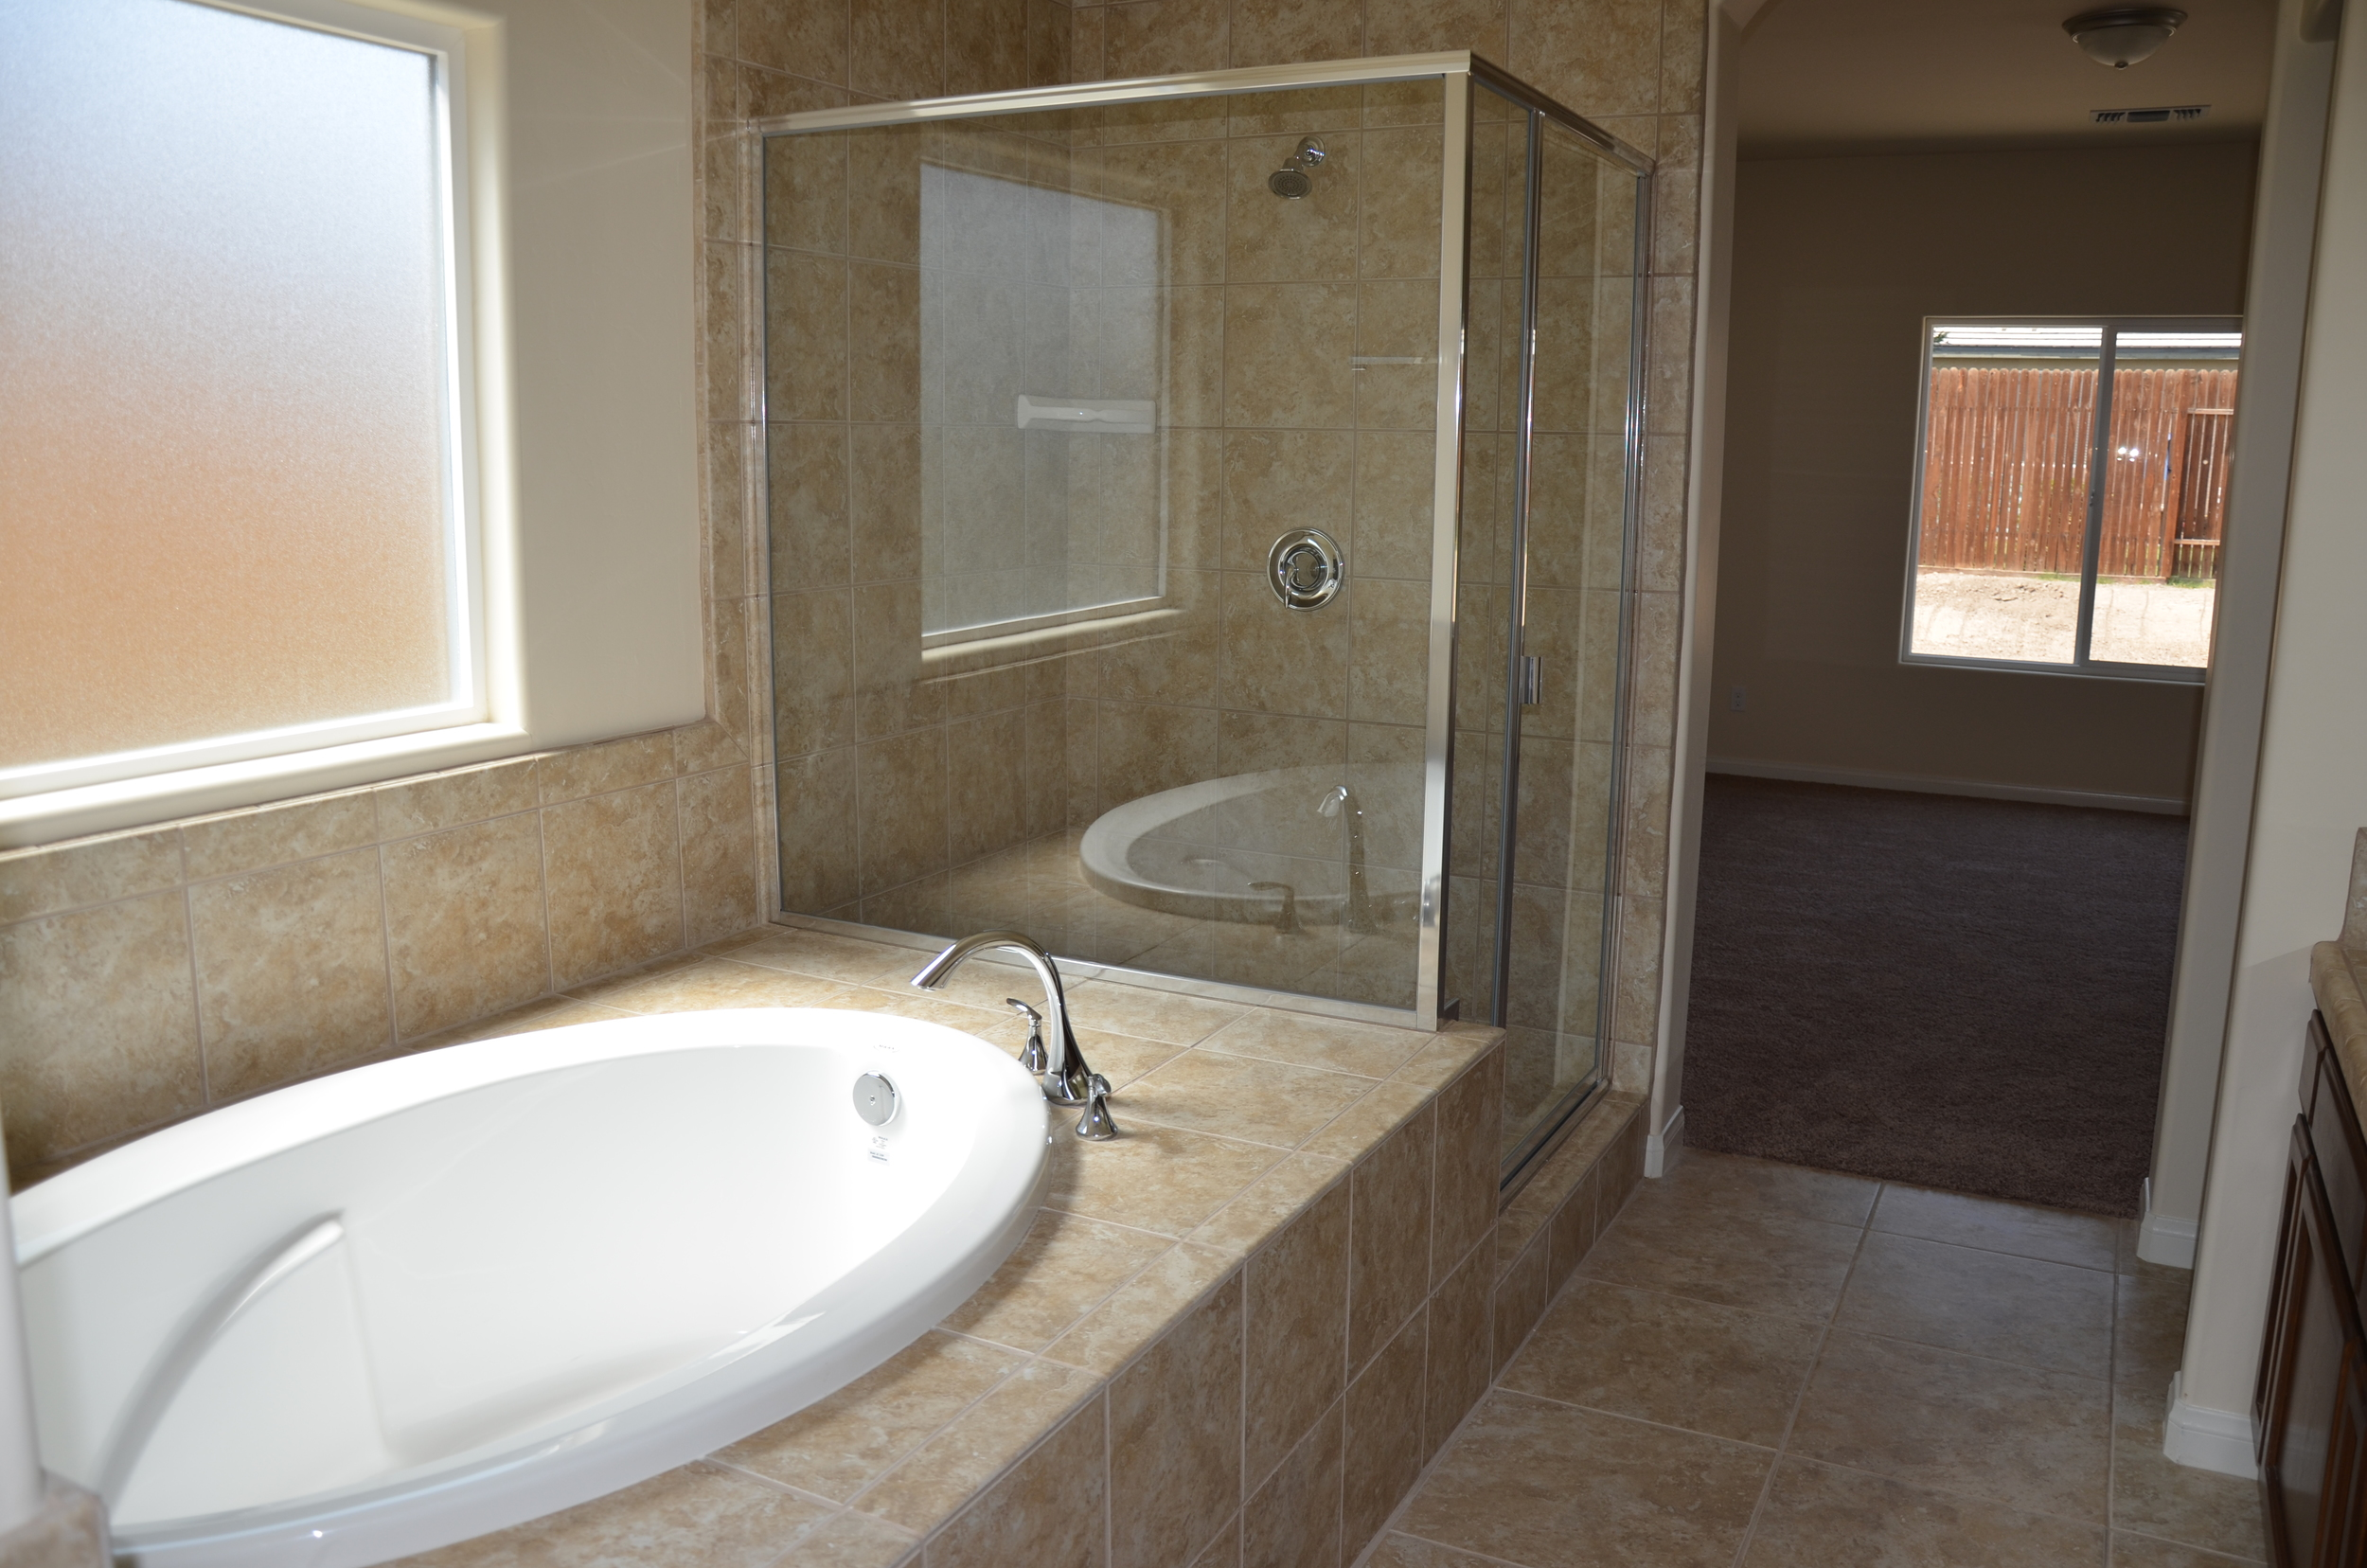 Resize - Master tub and shower in bathroom 1.JPG